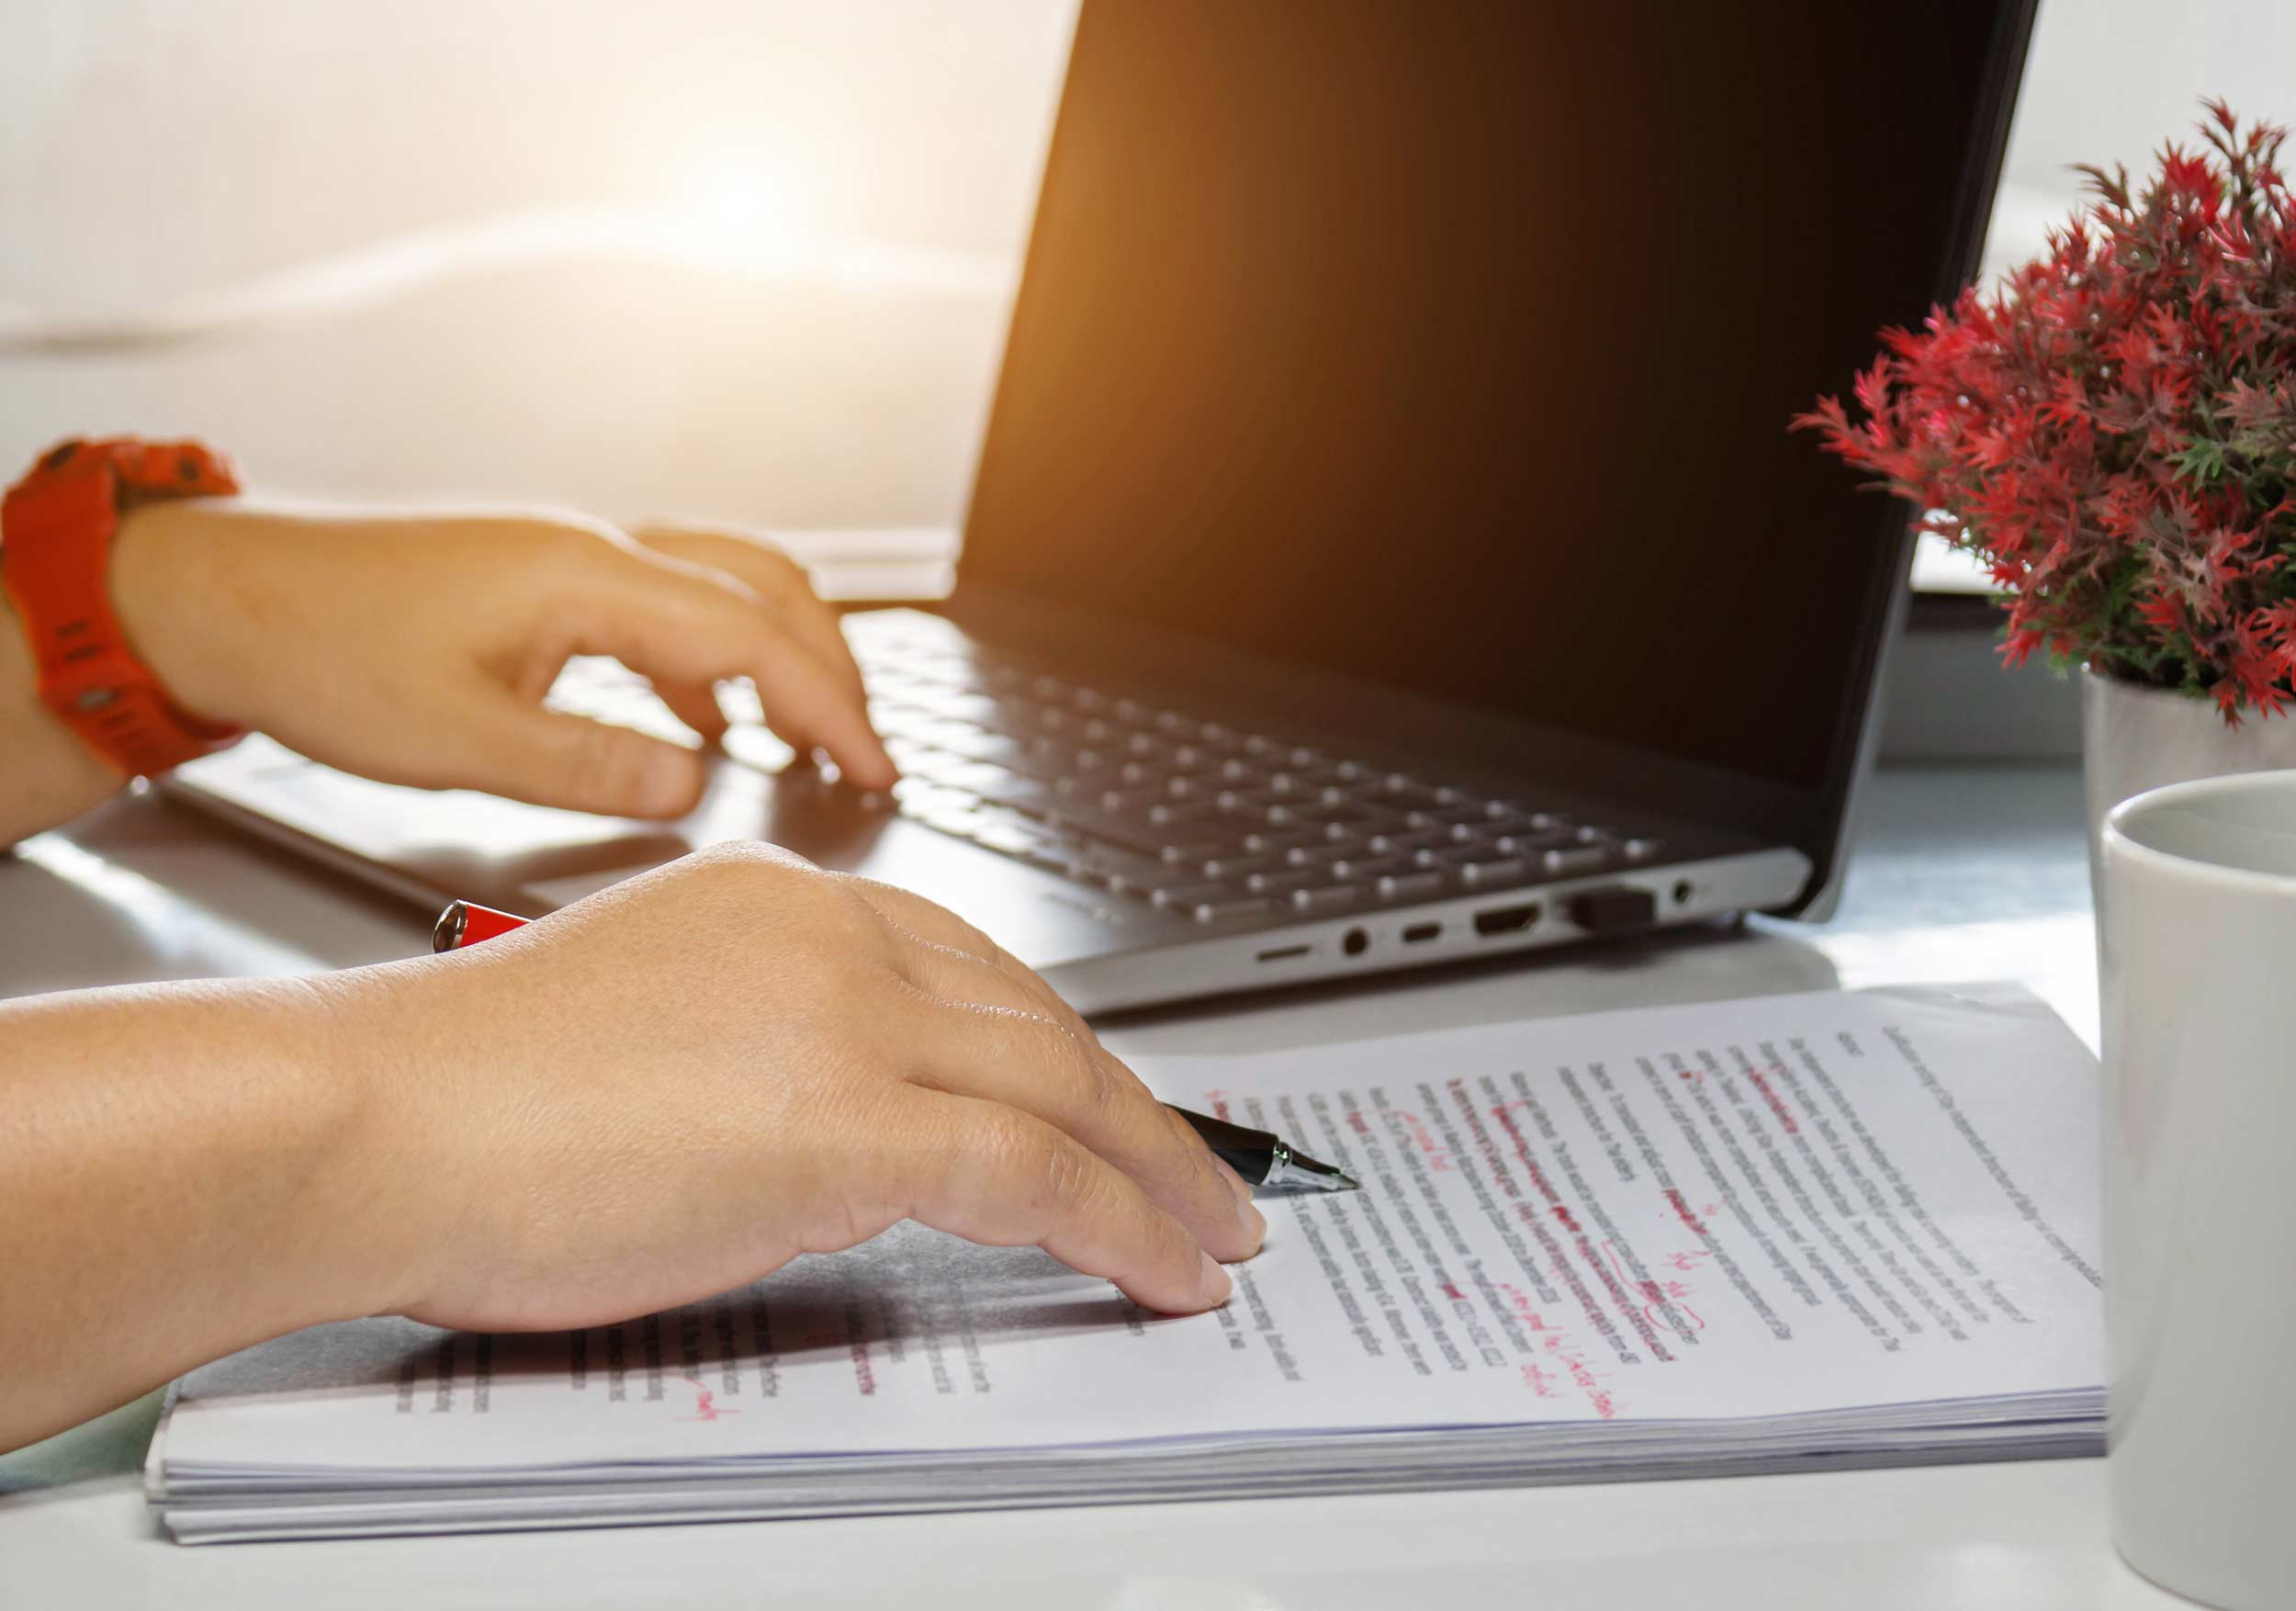 I will proofread and copy edit your website content